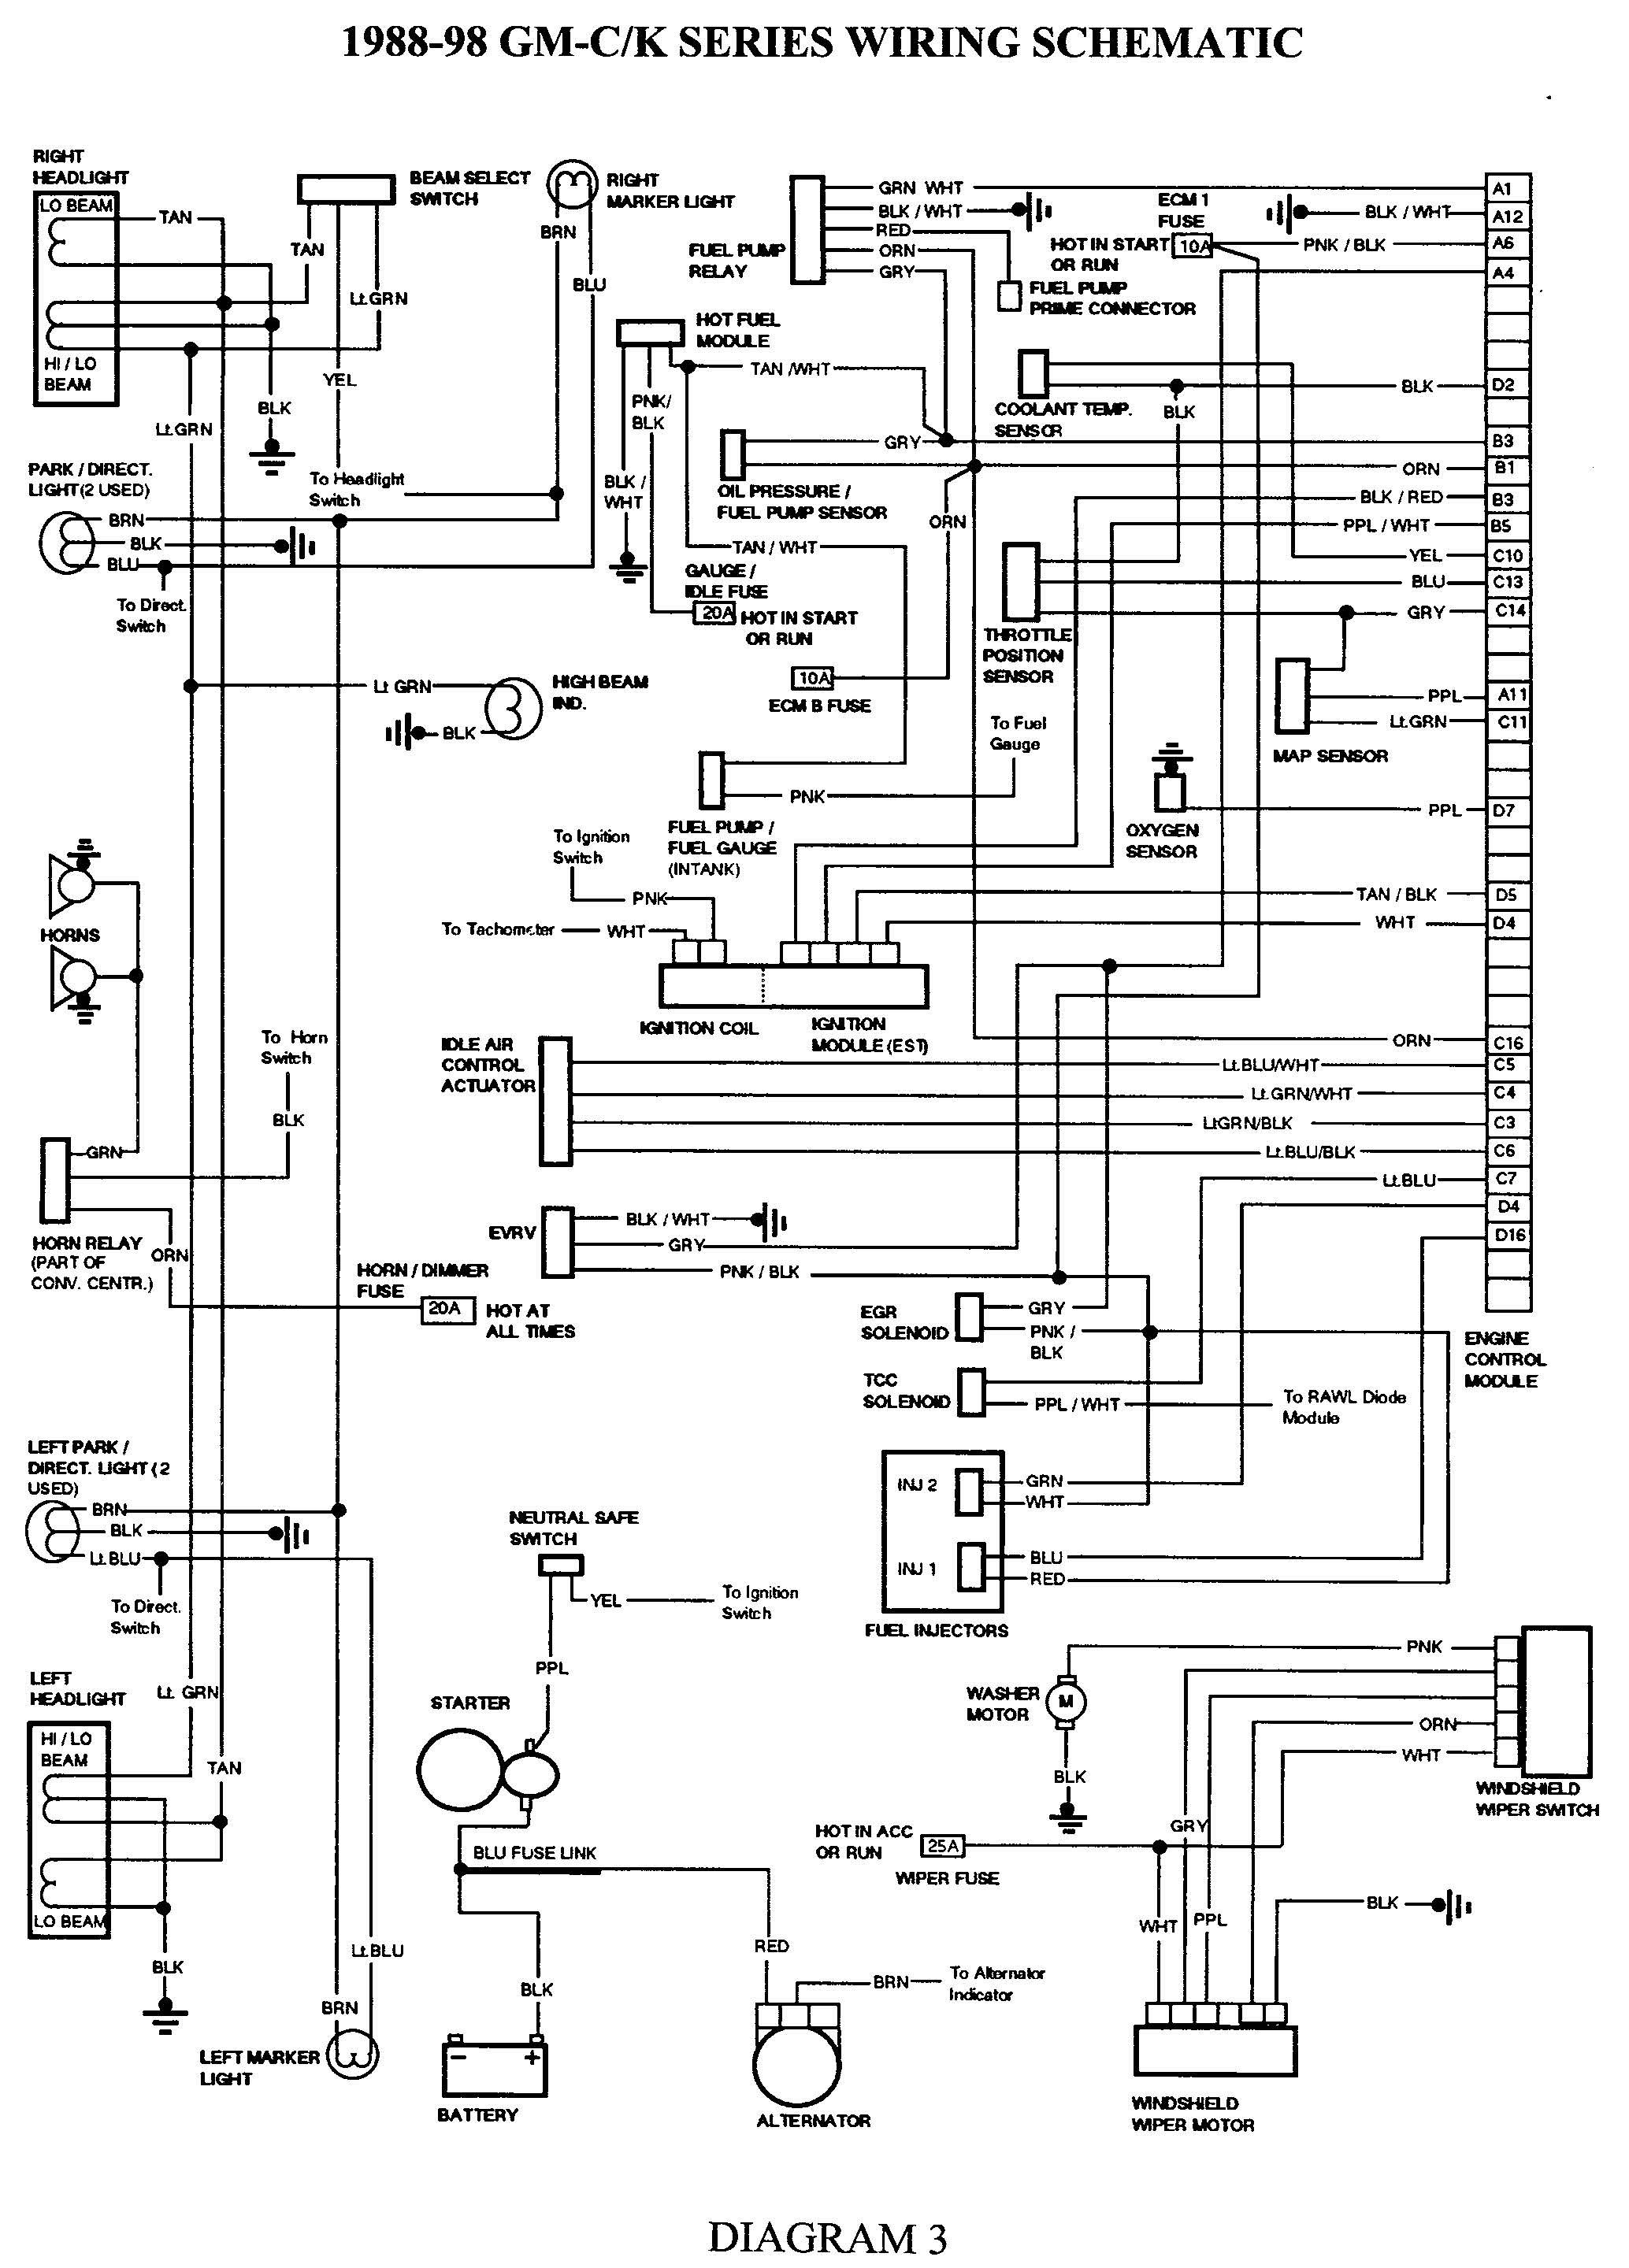 small resolution of 1986 chevrolet c10 5 7 v8 engine wiring diagram chevrolet c 1500 2009 chevy silverado 1500 1500 chevy silverado diagram